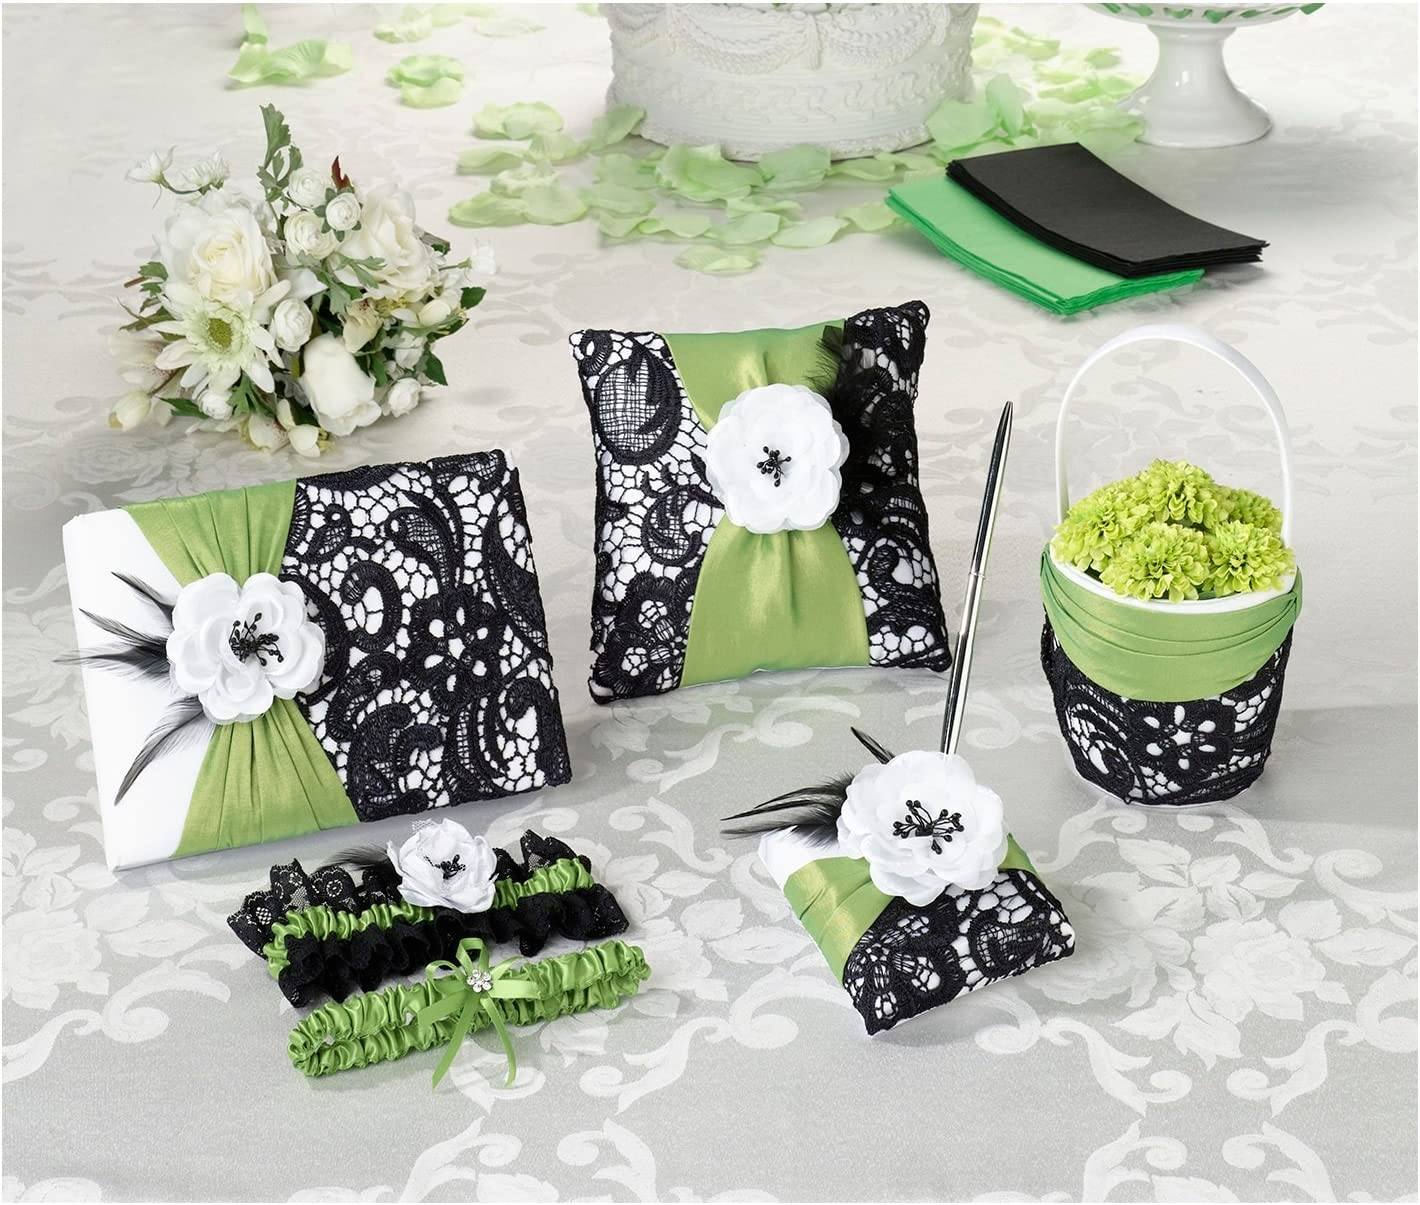 Manufacturer OFFicial shop Lillian Rose Accented 5 Year-end gift Piece Collec Ring Flower Pillow Basket